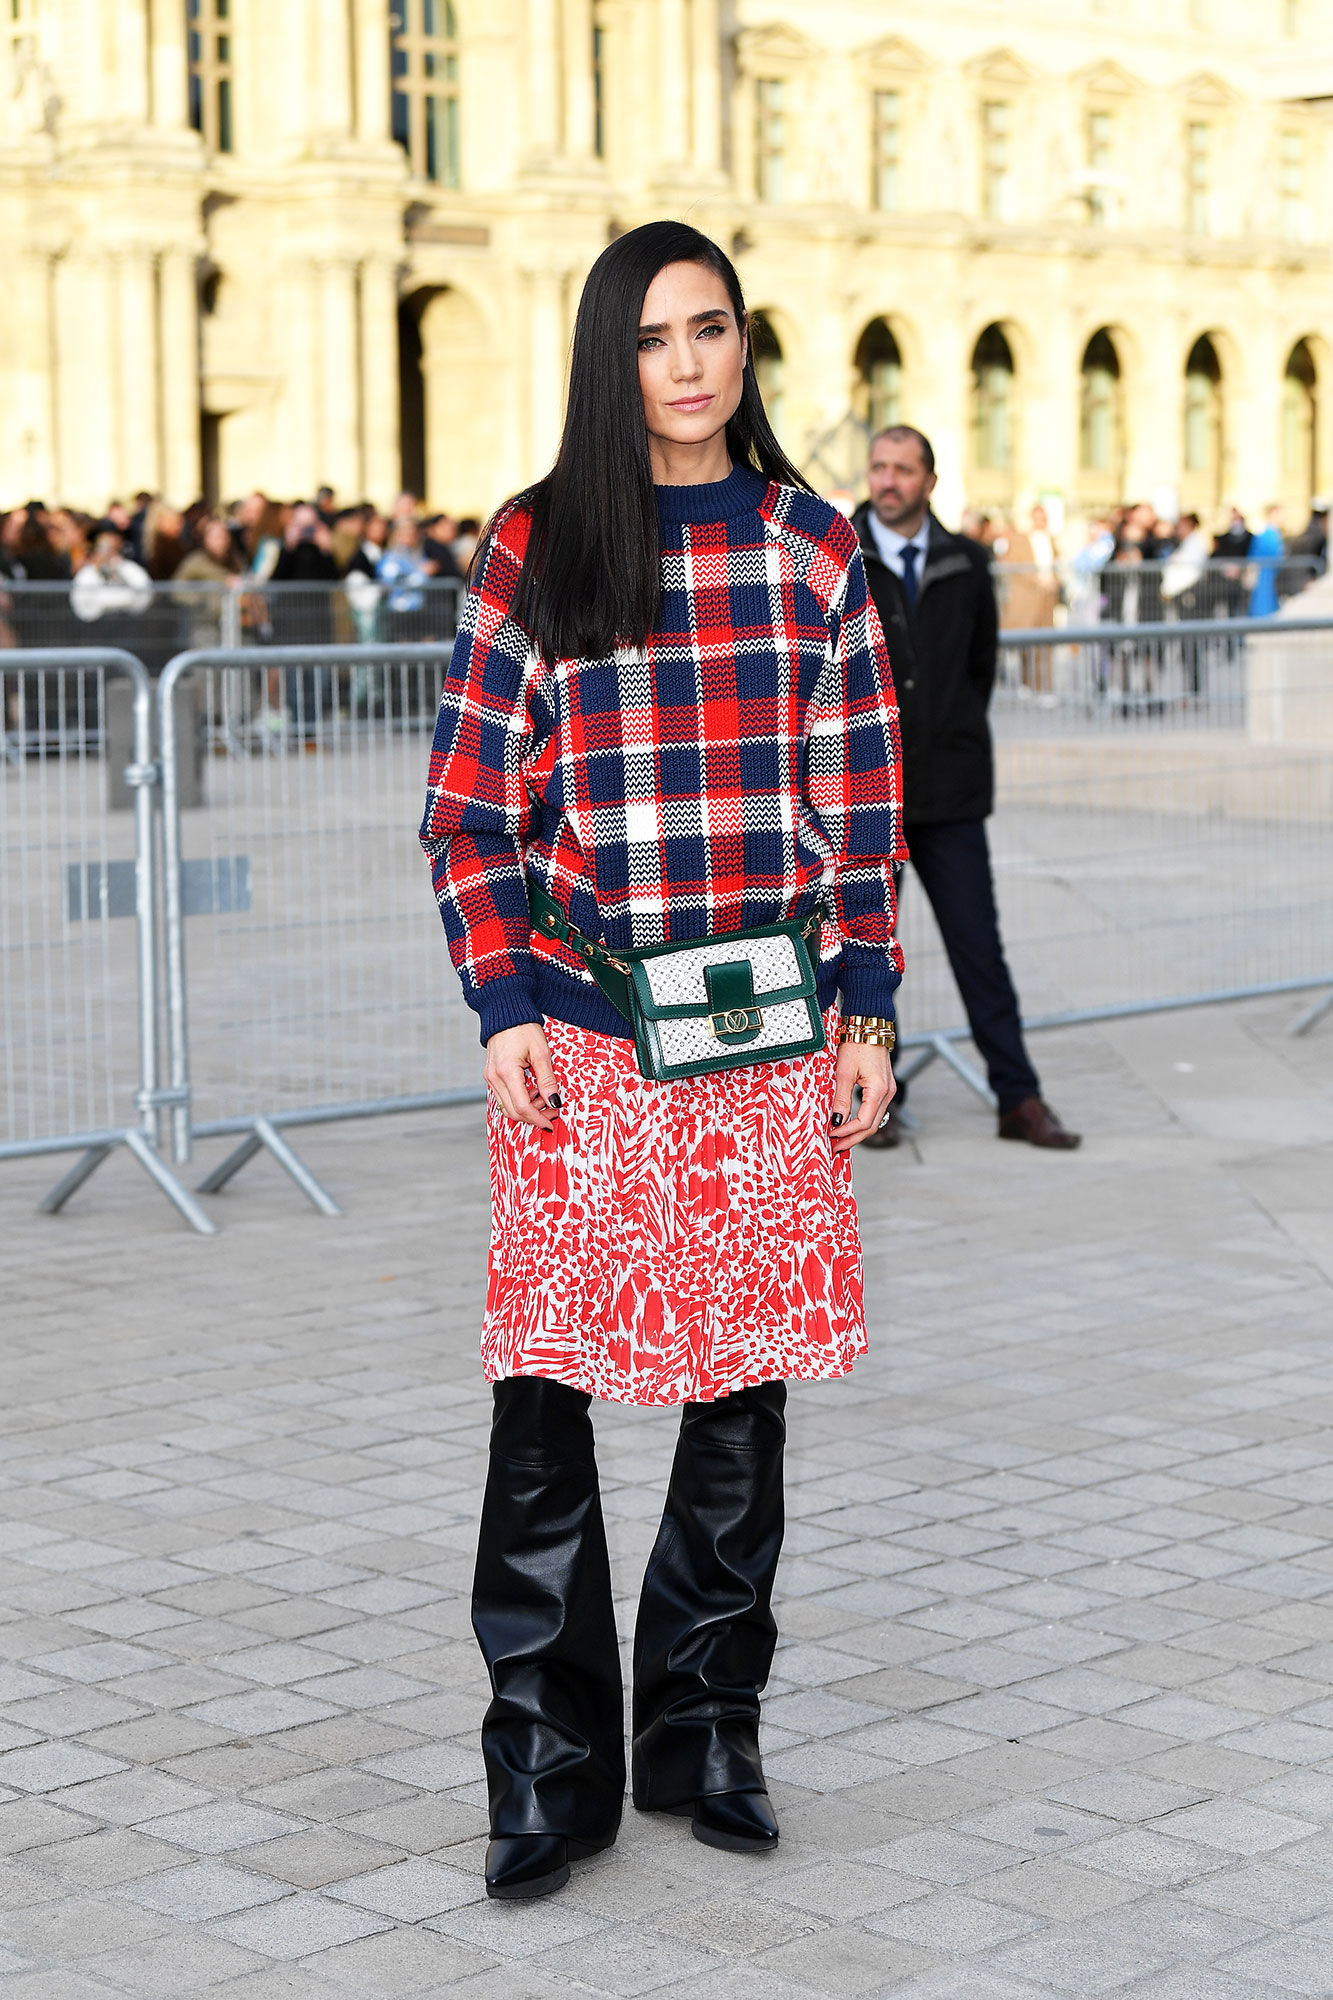 Jennifer Connelly Stars Closed Out Paris Fashion Week on a Sartorial High Note - When in doubt, layer a plaid sweater over your printed skirt and leather pants as the actress did at Louis Vuitton on Tuesday, March 5.